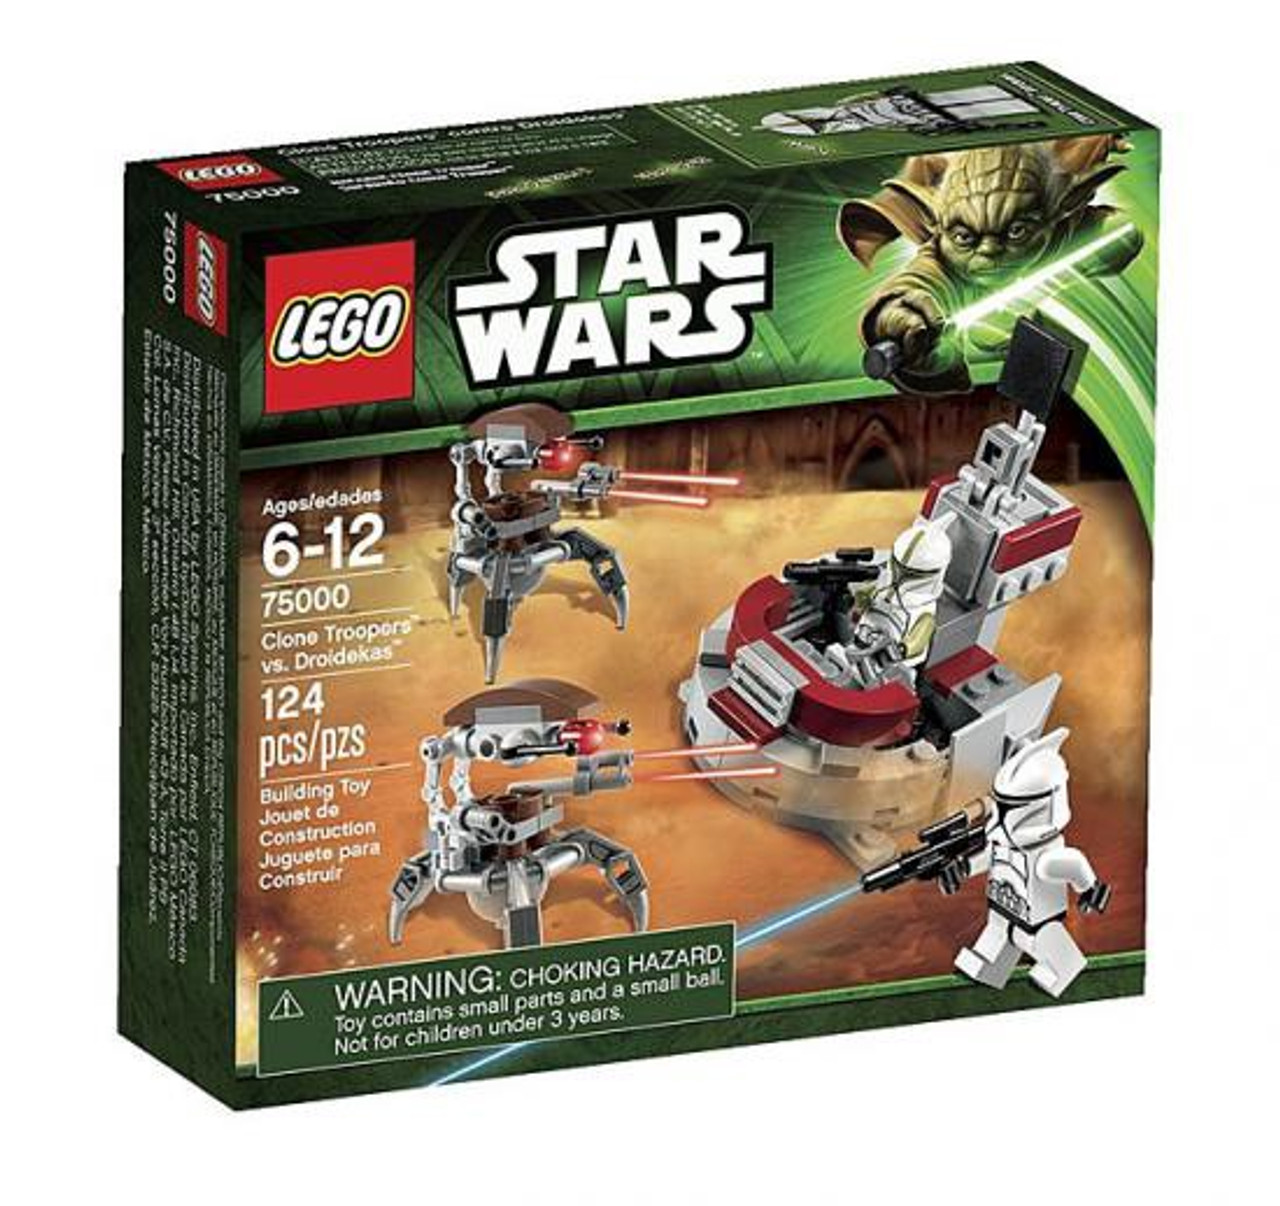 LEGO Star Wars The Clone Wars Clone Troopers vs. Droidekas Set #75000